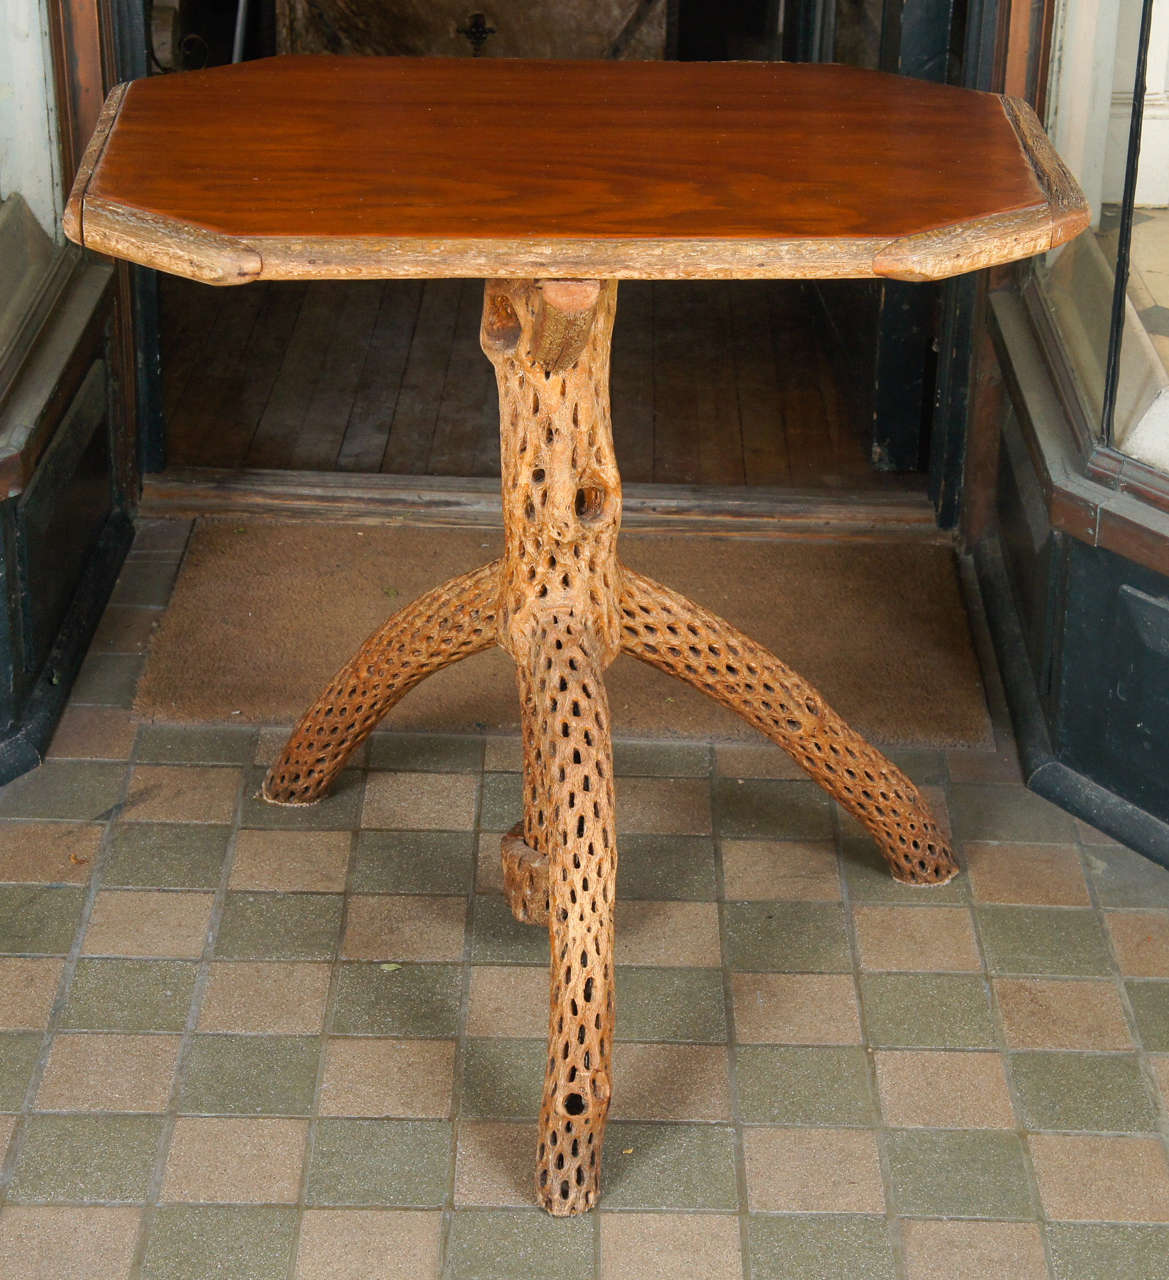 Merveilleux This Interesting And Unusual Table Made In The South West Circa 1930 Is  Constructed Of Saguaro